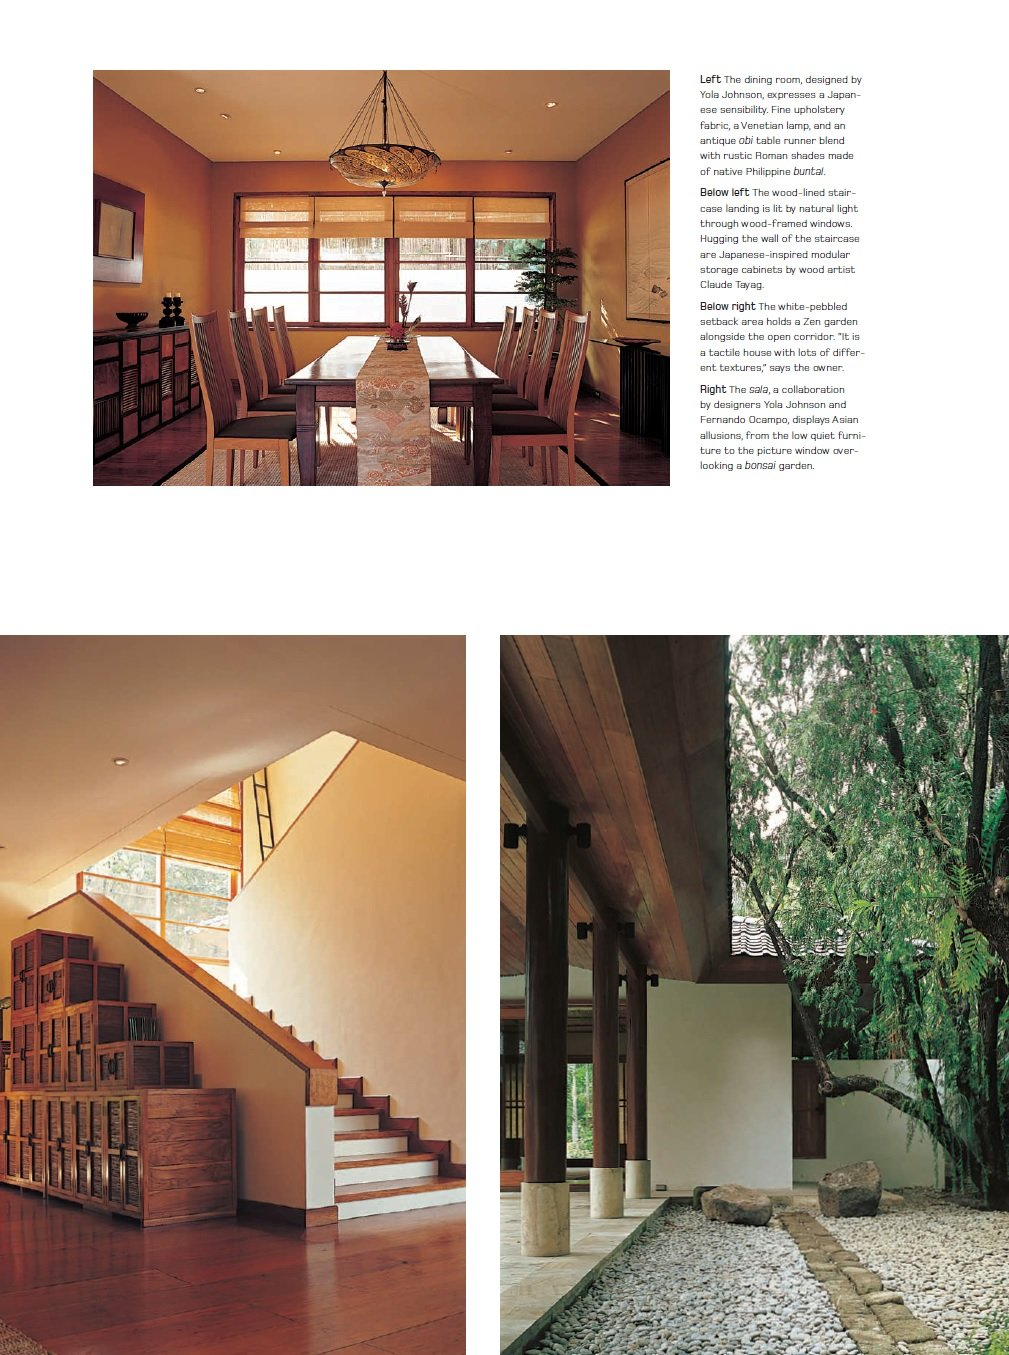 25 Tropical Houses in the Philippines: Elizabeth V. Reyes, A ... on native philippine furniture, native philippine bedroom, native philippine art,